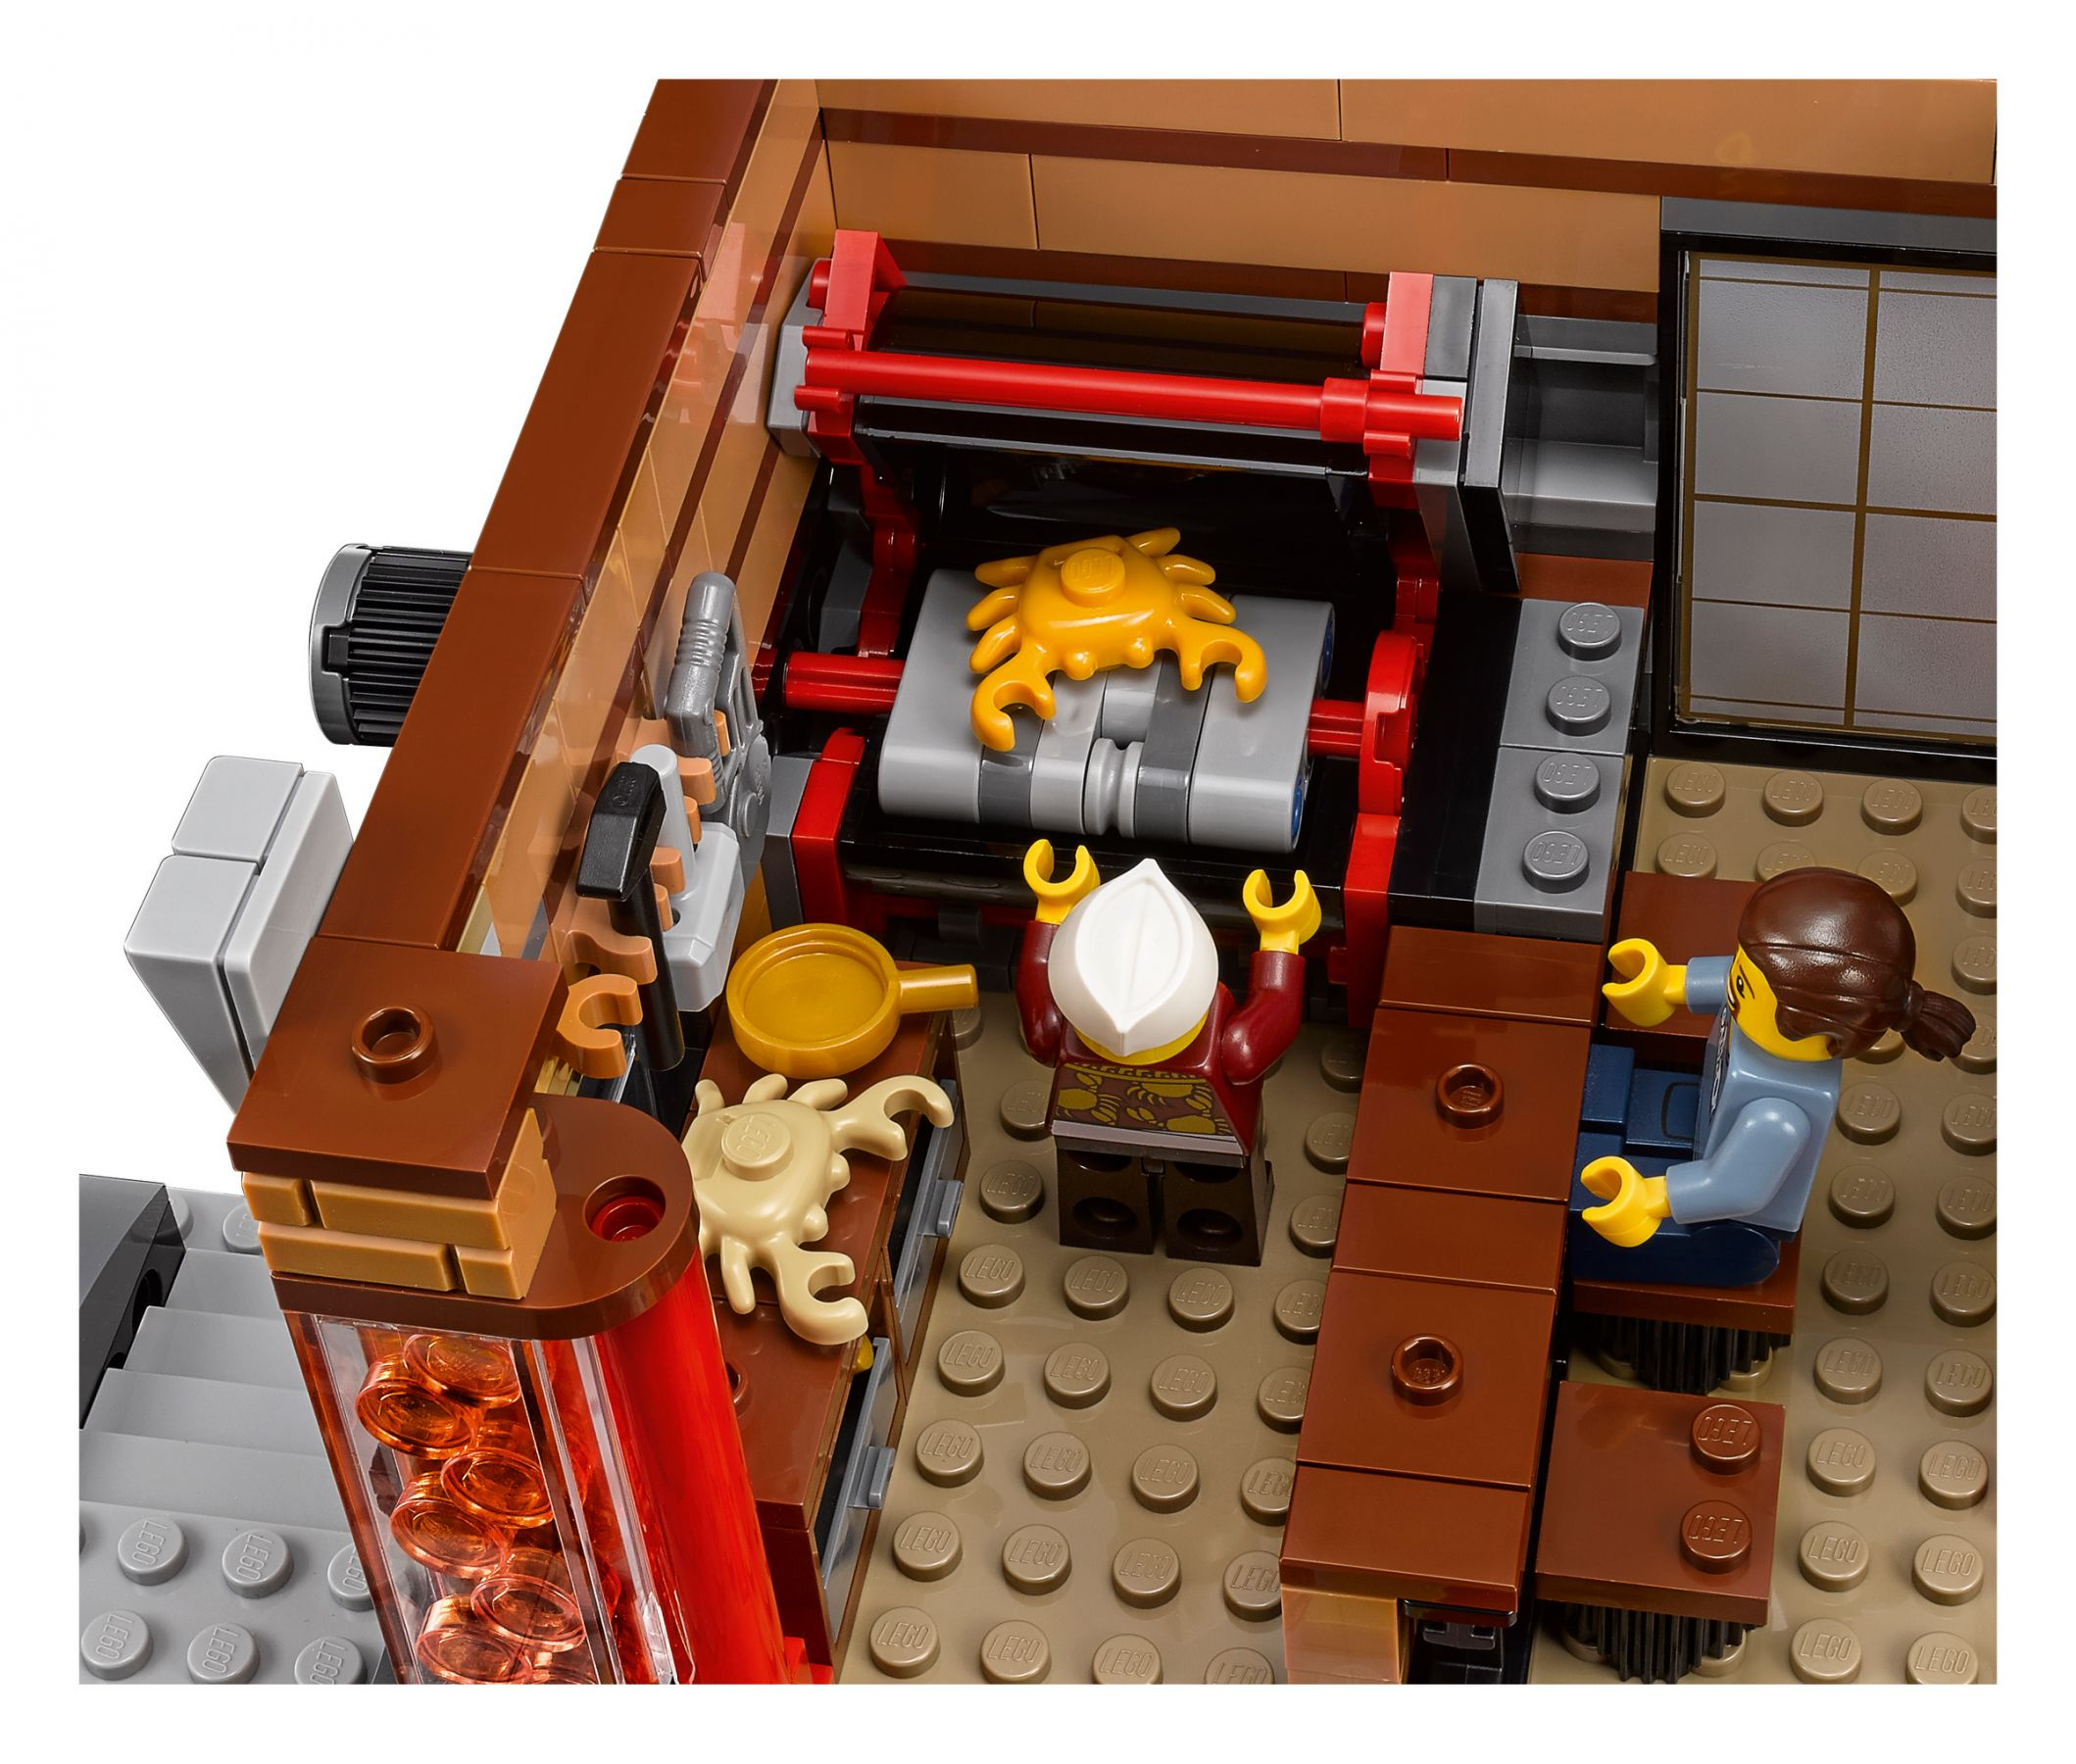 LEGO The LEGO Ninjago Movie 70620 Ninjago City LEGO_70620_alt8.jpg